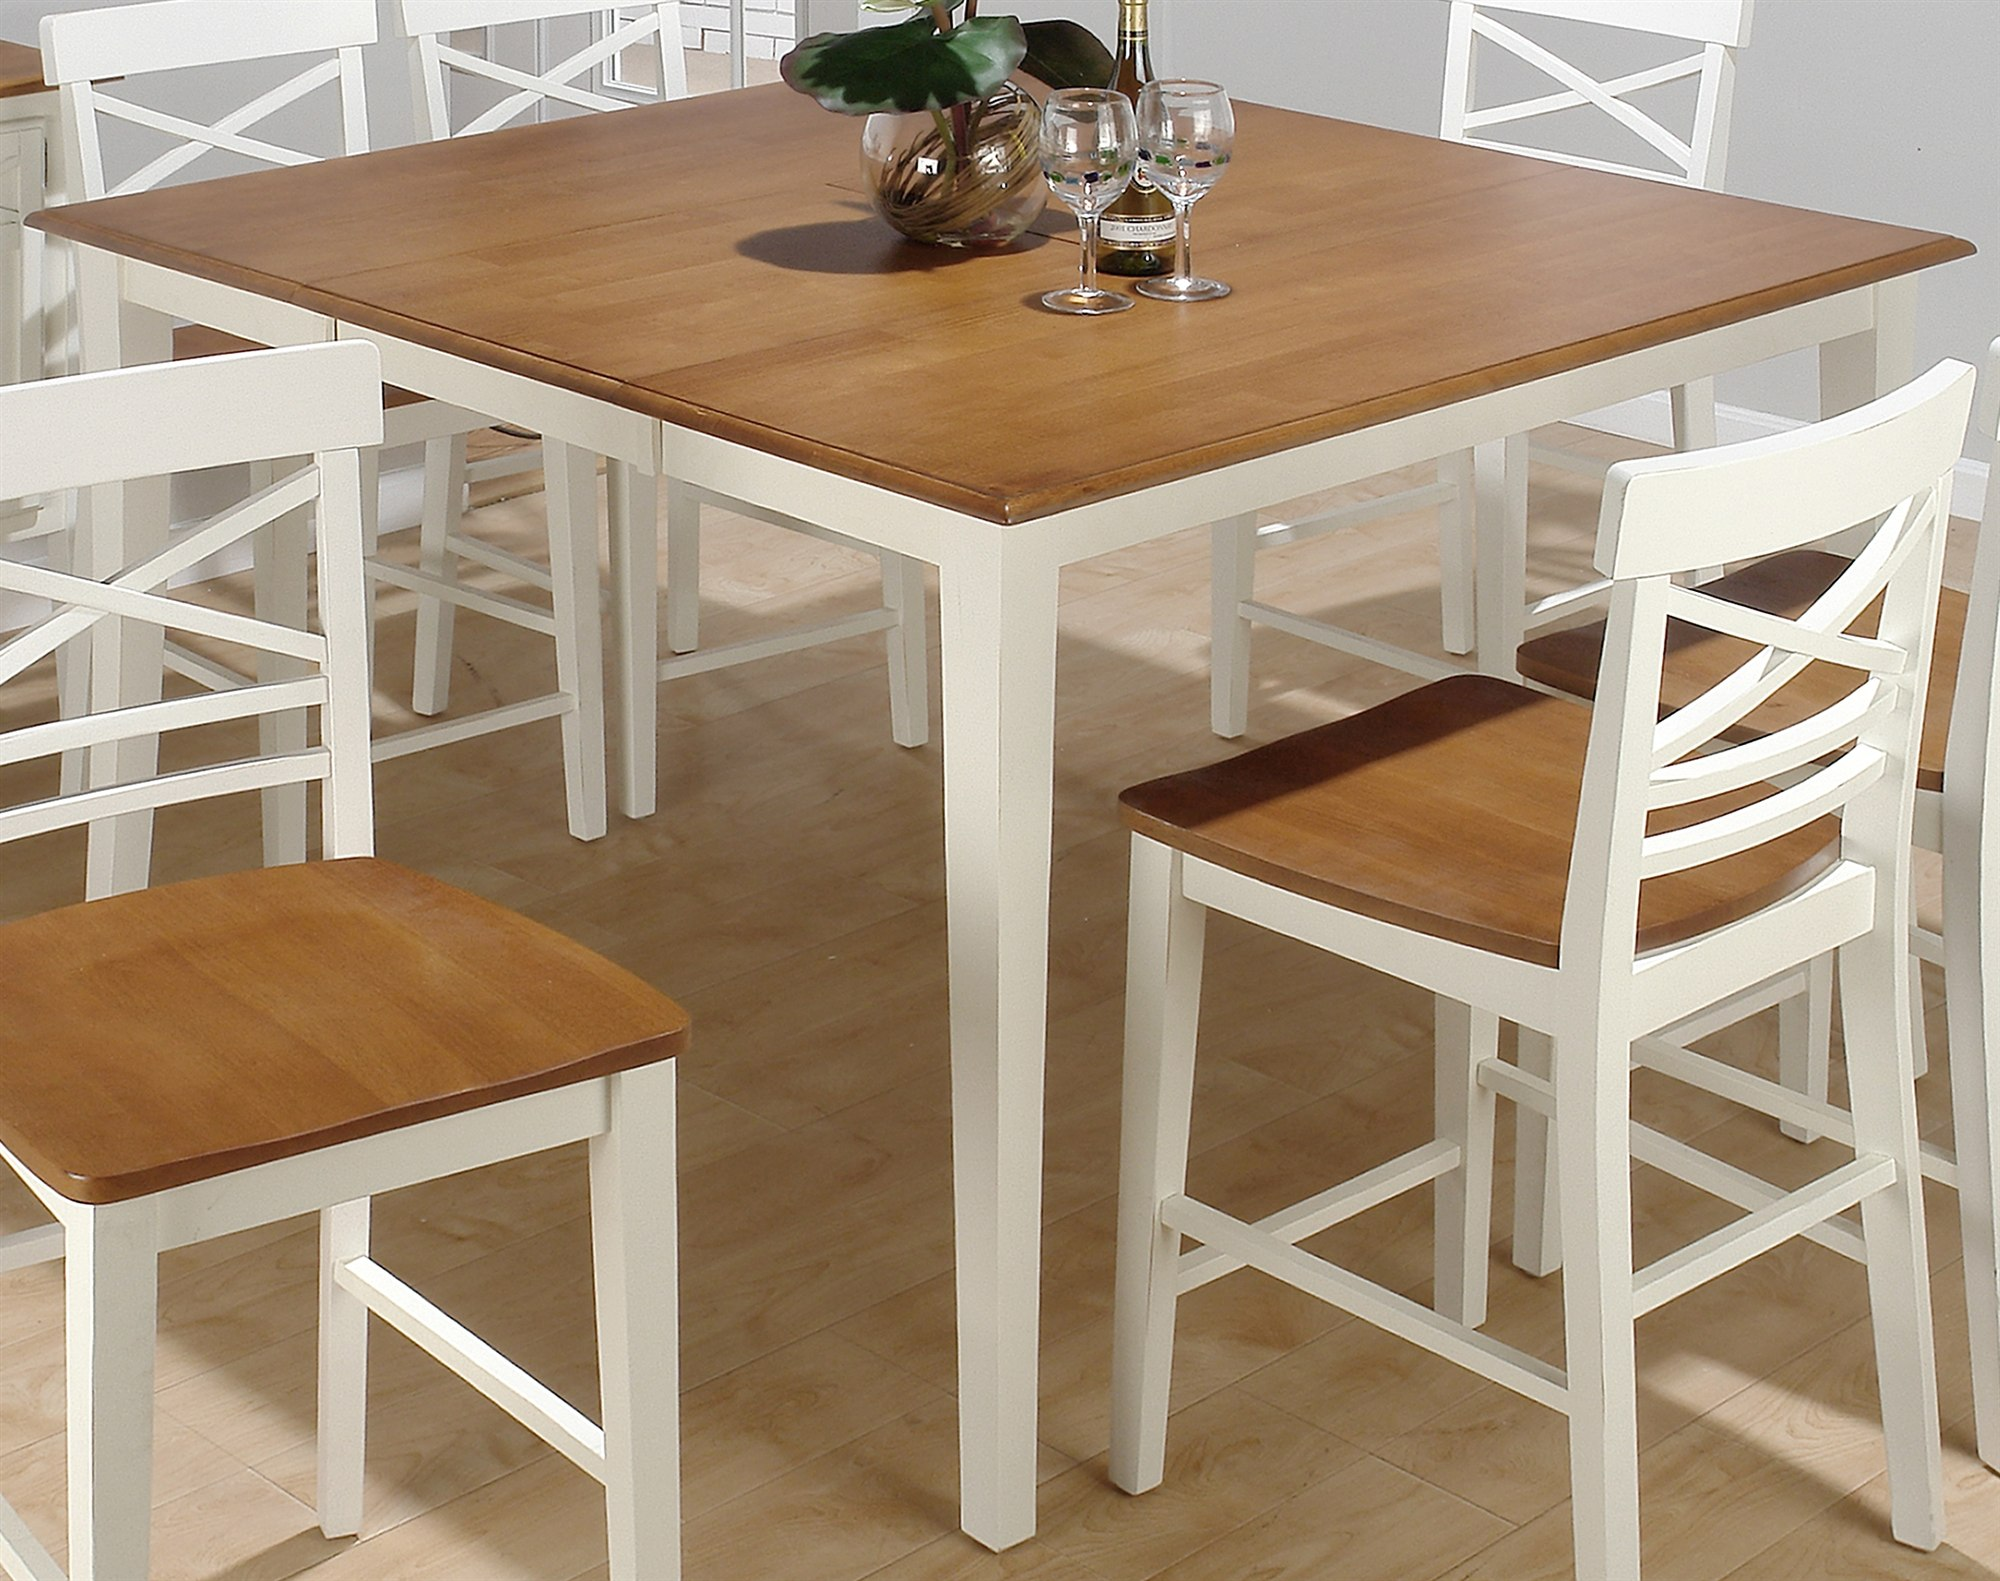 Kitchen chairs ikea  17 Ideas of chairs to the latest